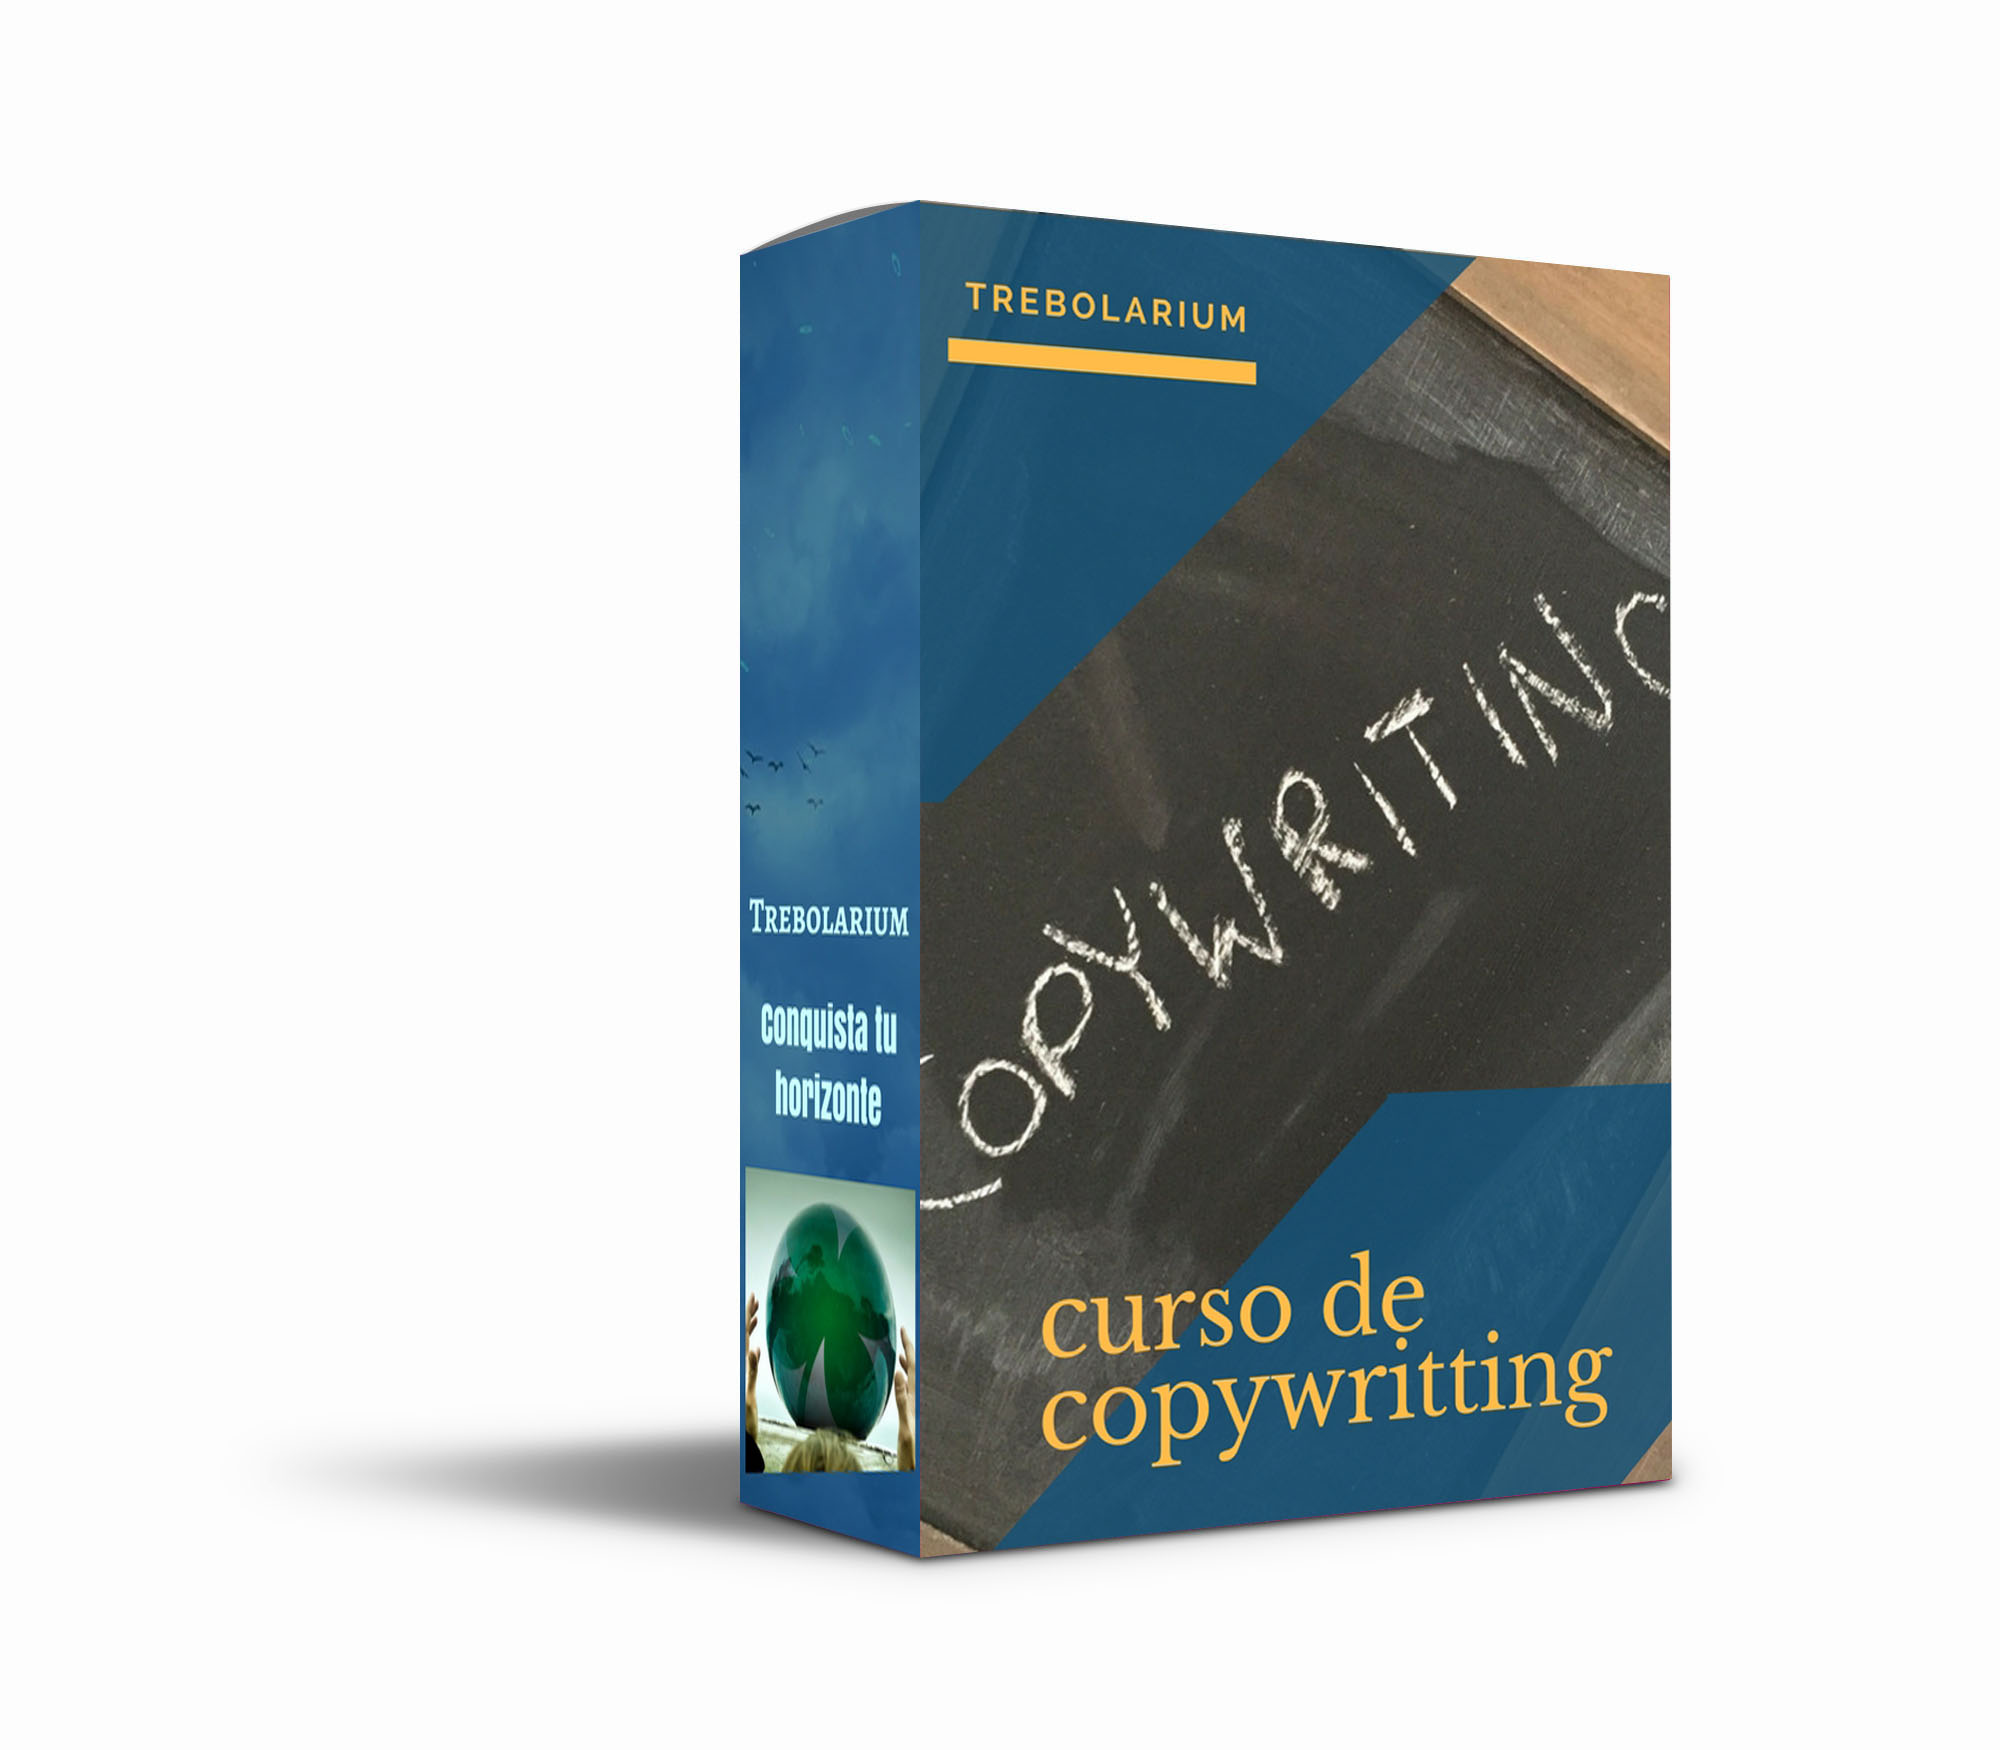 Curso de copywritting